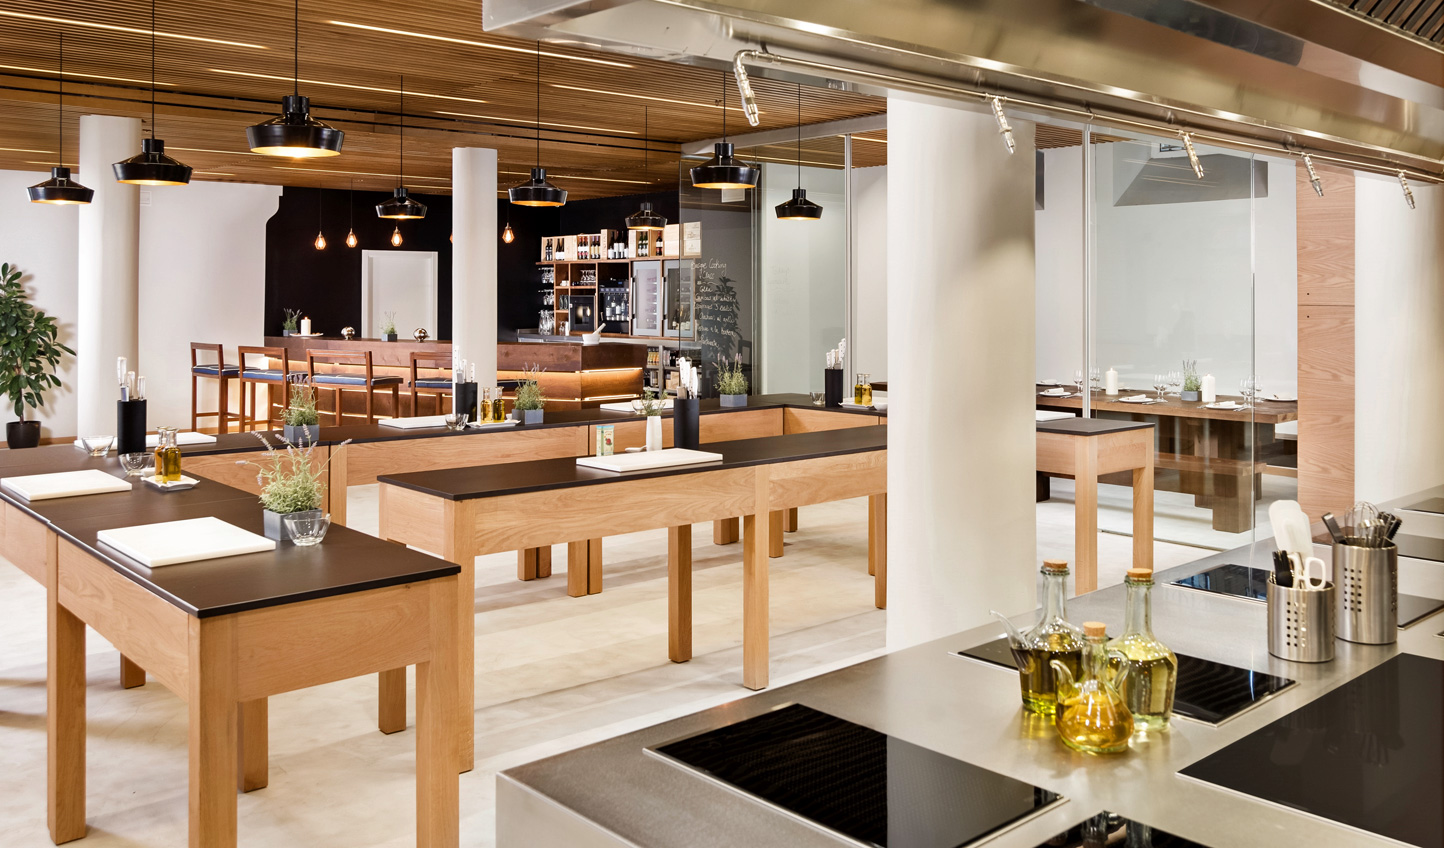 Take inspiration from San Sebastian's restaurants before putting your skills to the test